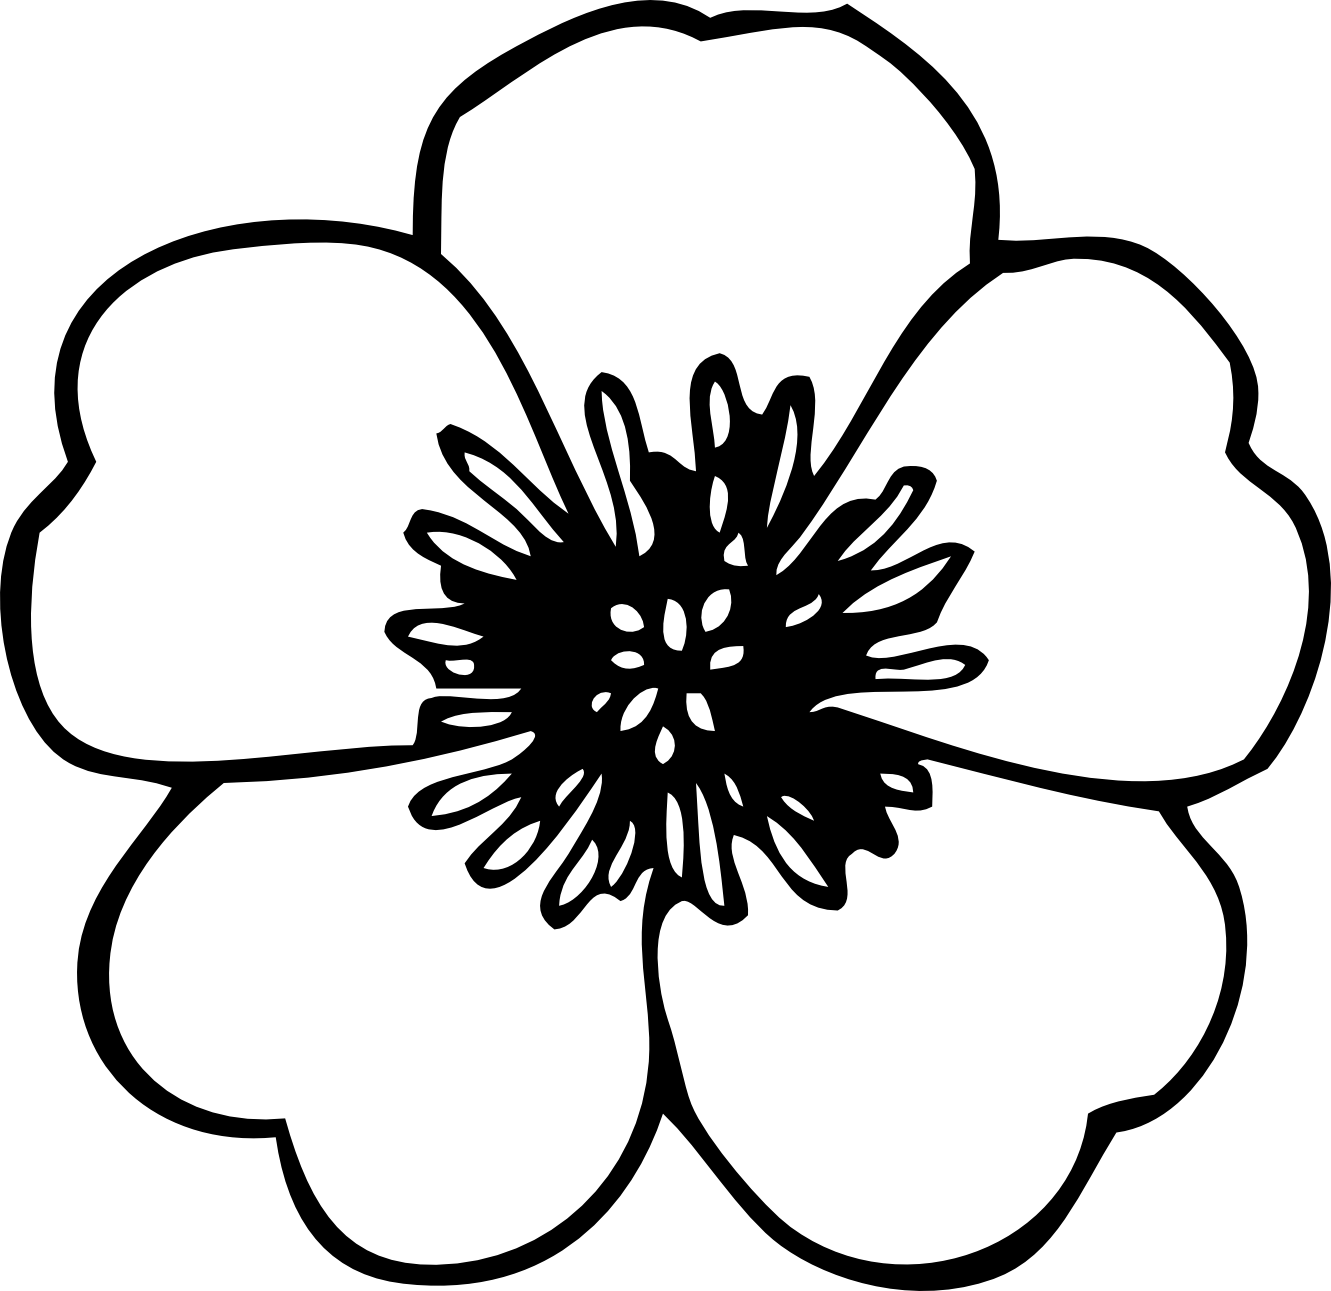 White flower clipart transparent clipart library download Simple Flower Clipart Black And White clipart library download